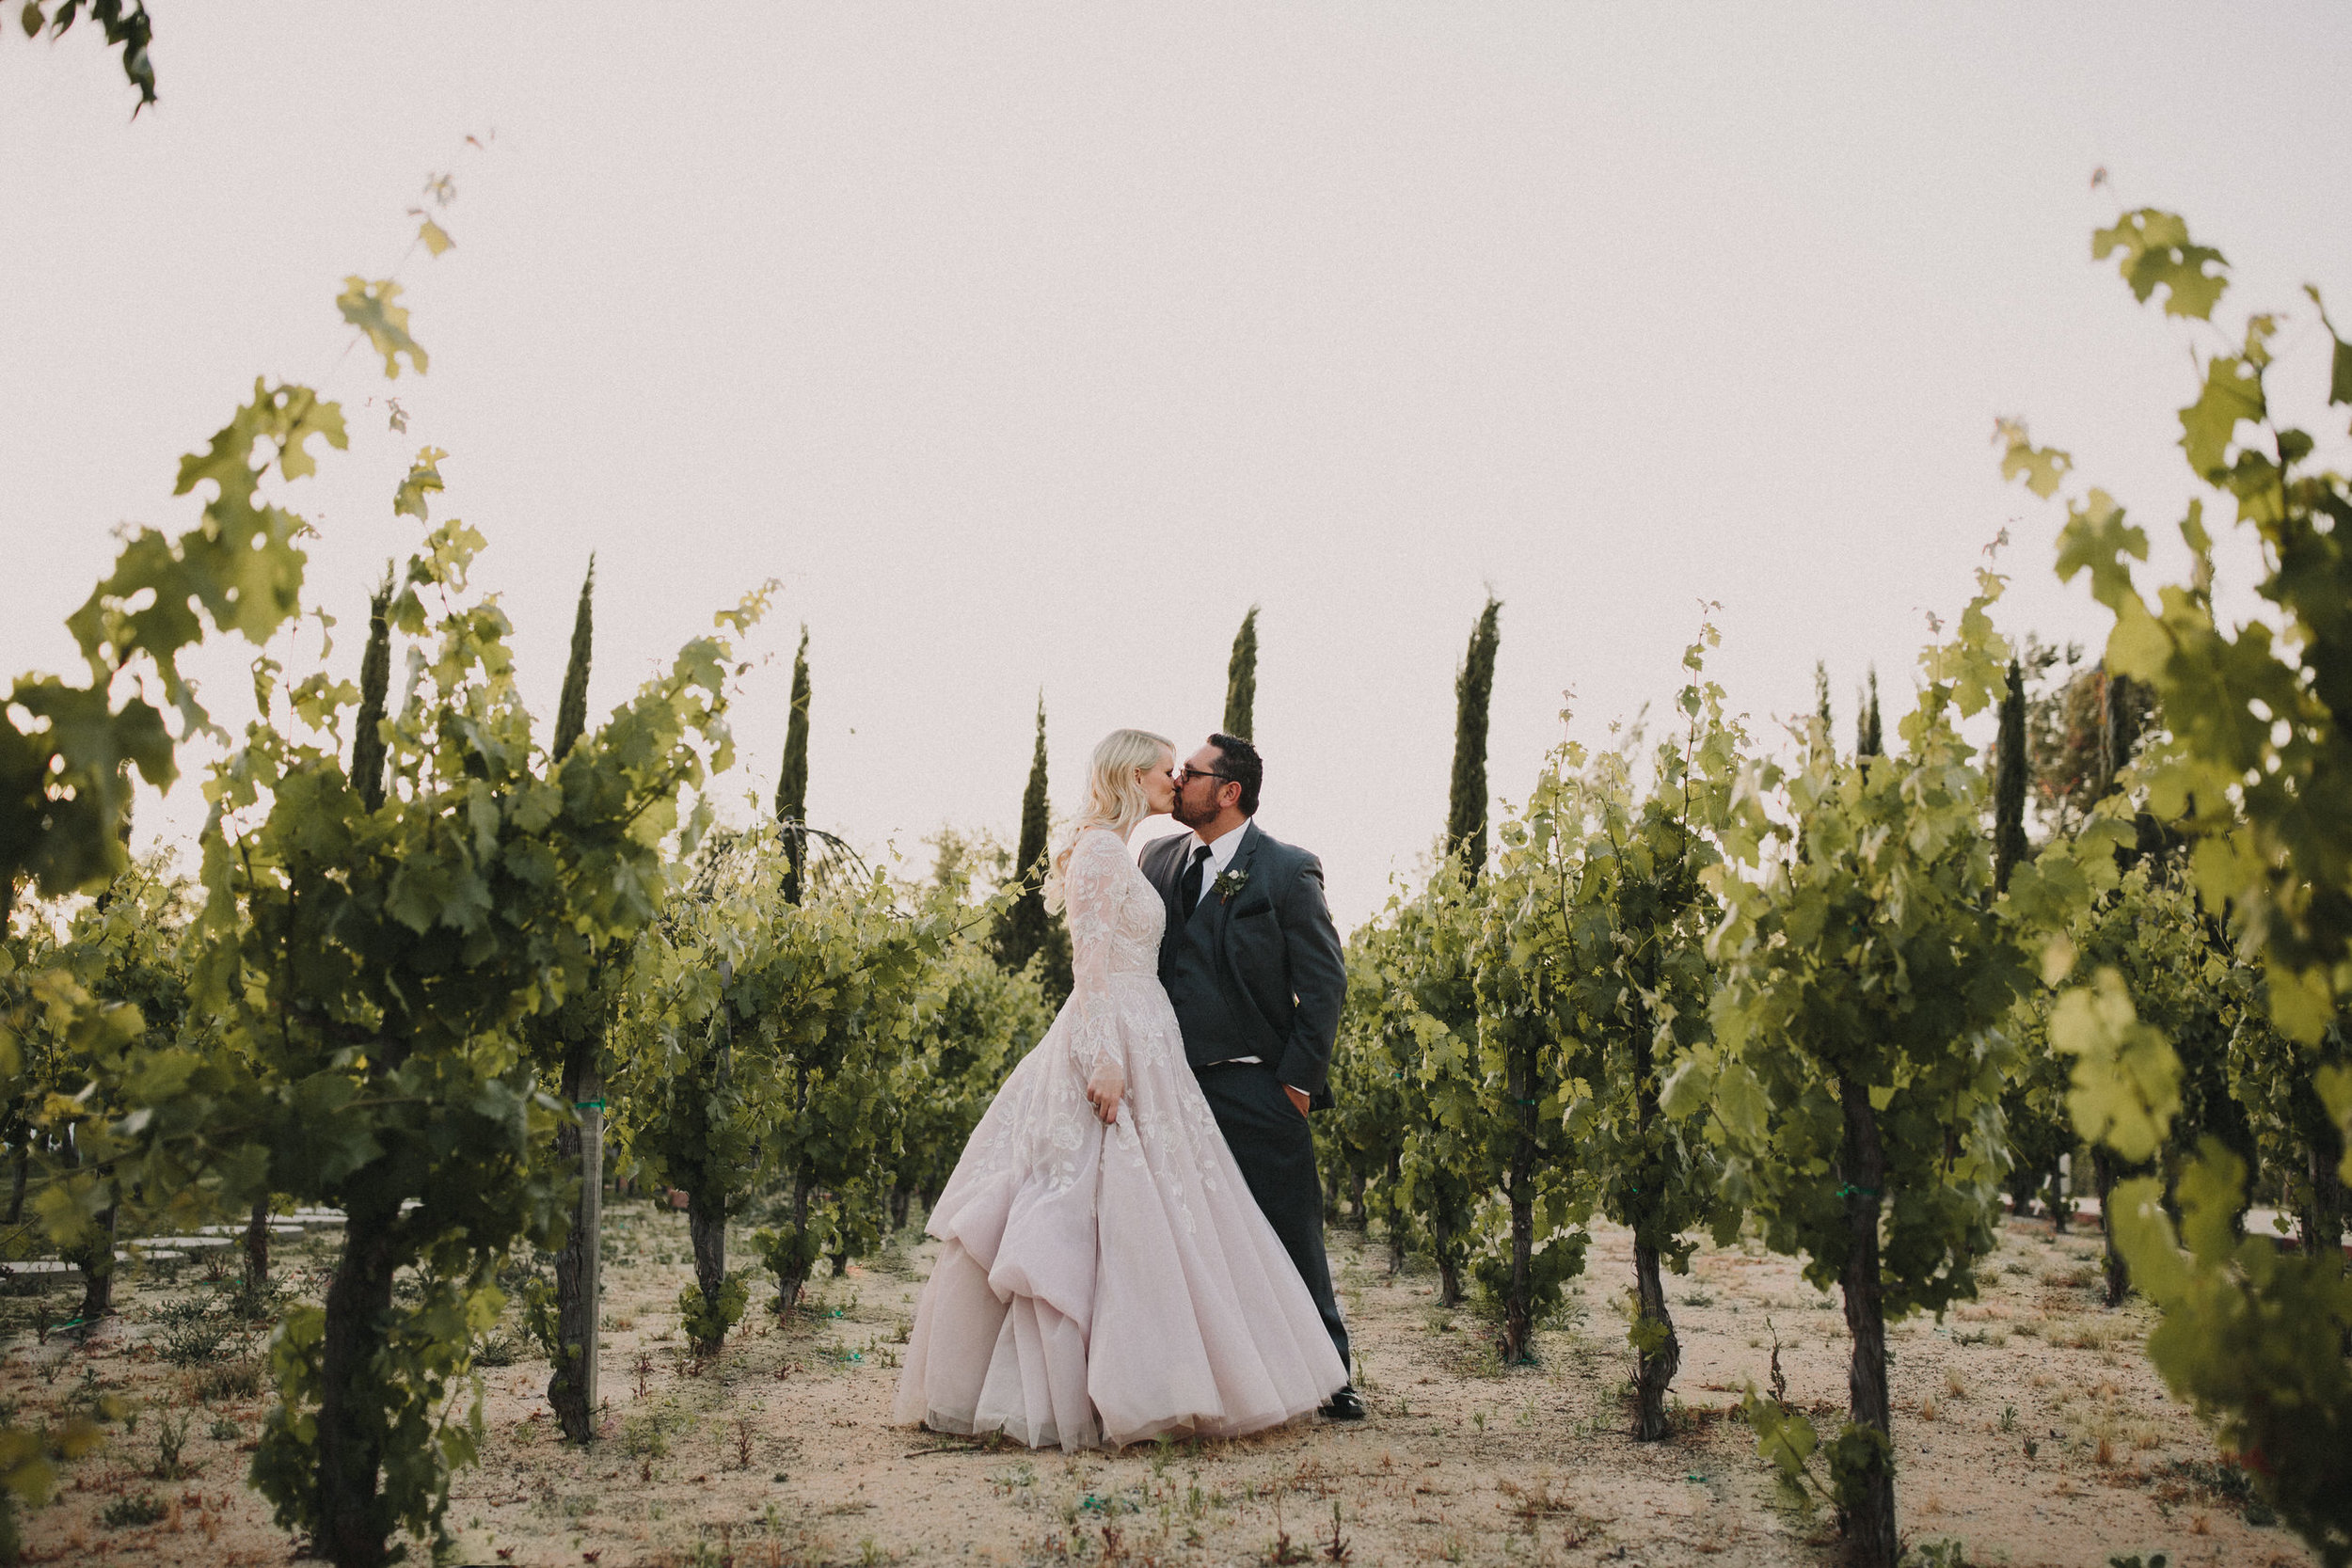 Stephanie + Charles - Mount Palomar Winery Wedding-49.jpg